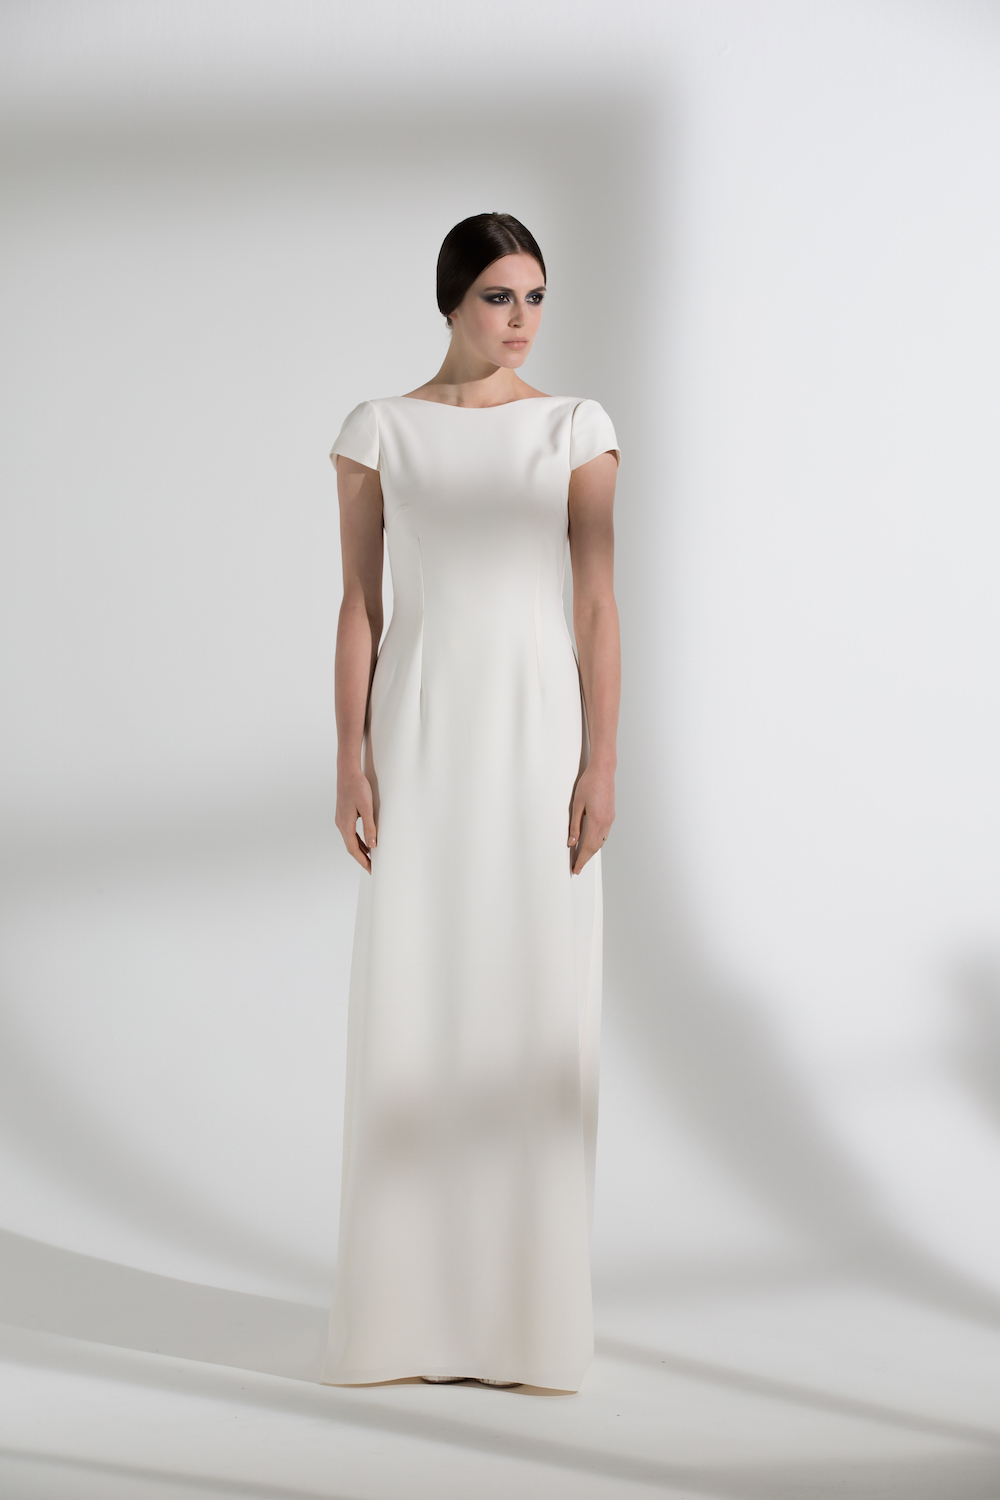 FERN DRESS | WEDDING DRESS BY HALFPENNY LONDON